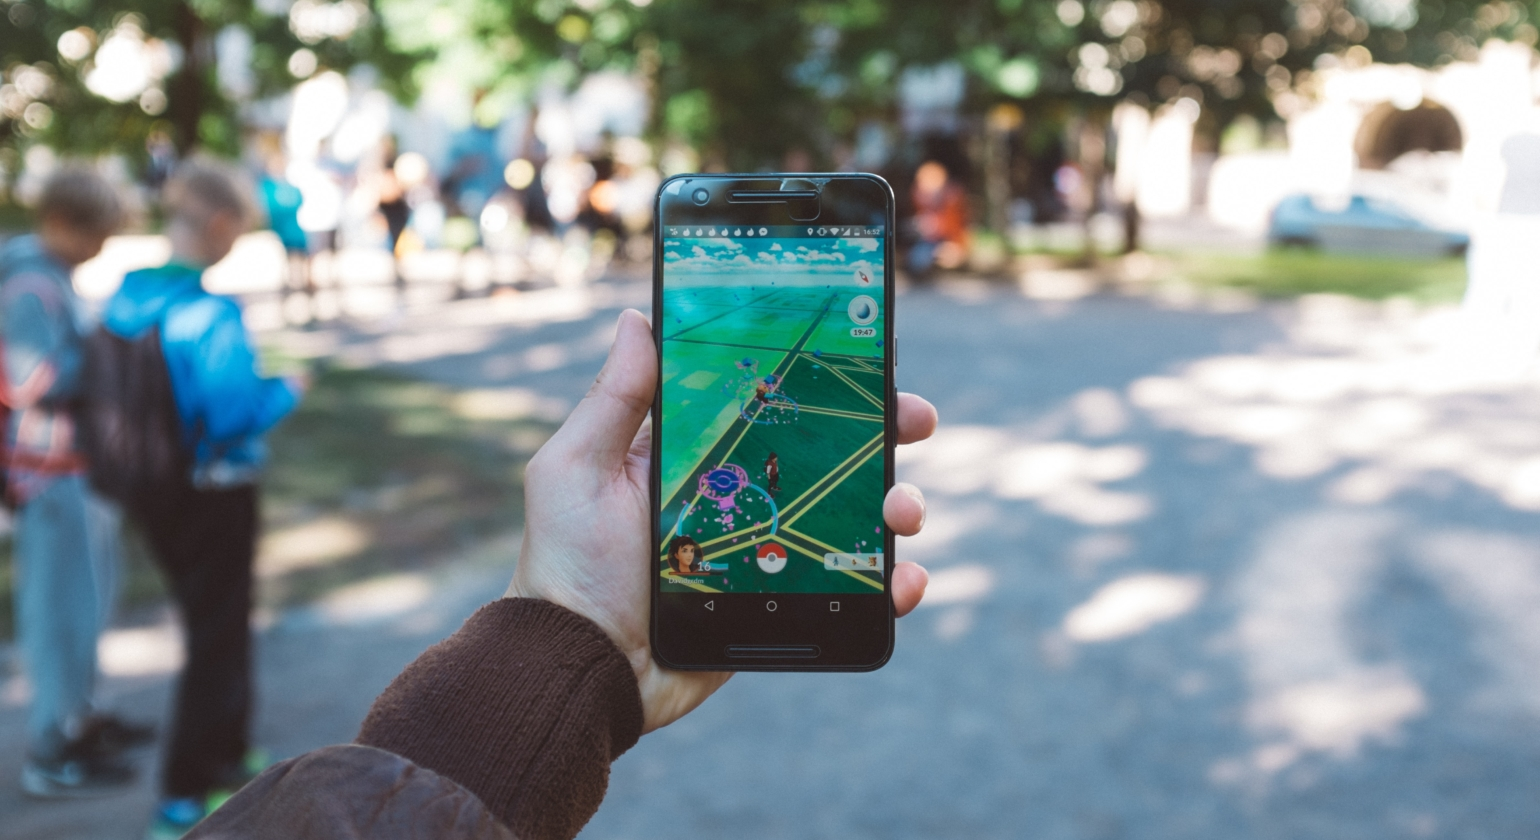 10 Location tracking apps that you can use to your benefit